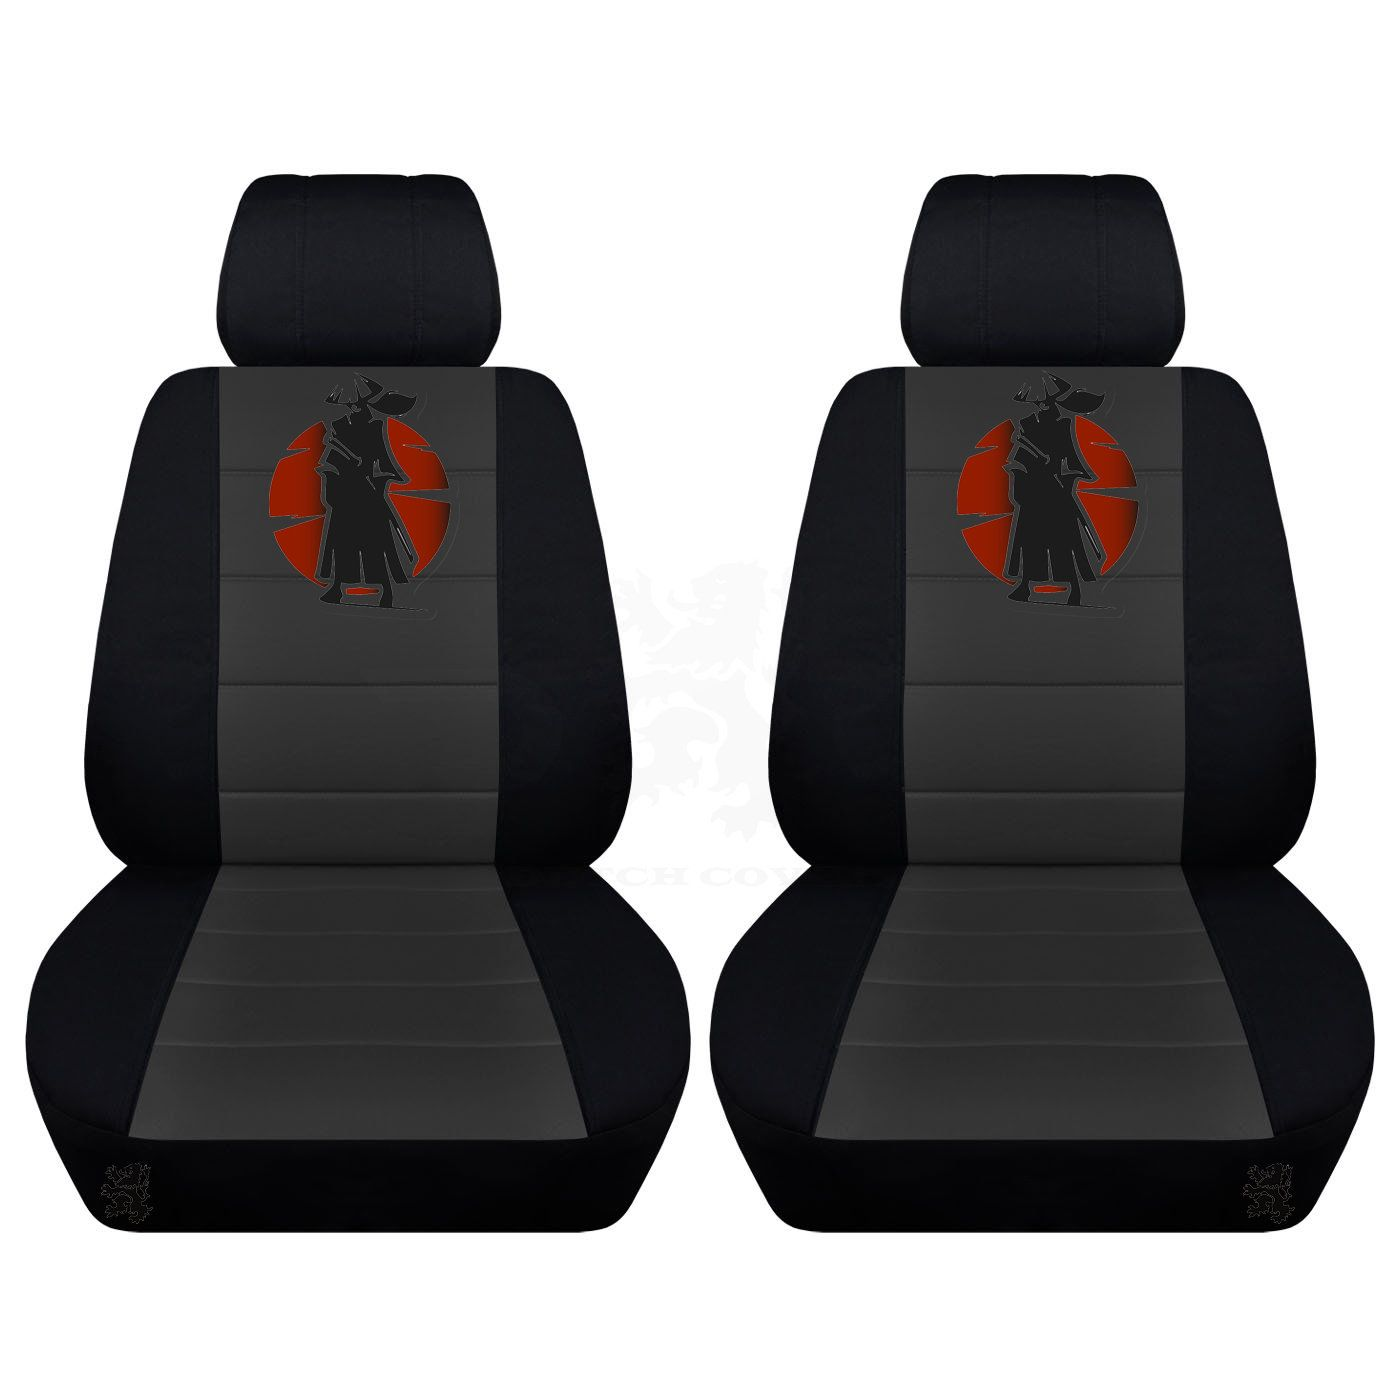 Fits 2015 To 2018 Ford F 150 Samurai Seat Covers Front Only Airbag Friendly 40 20 40 Seats And Bucket Seats 2017f150se In 2020 Seat Covers Truck Seat Covers Ford F150